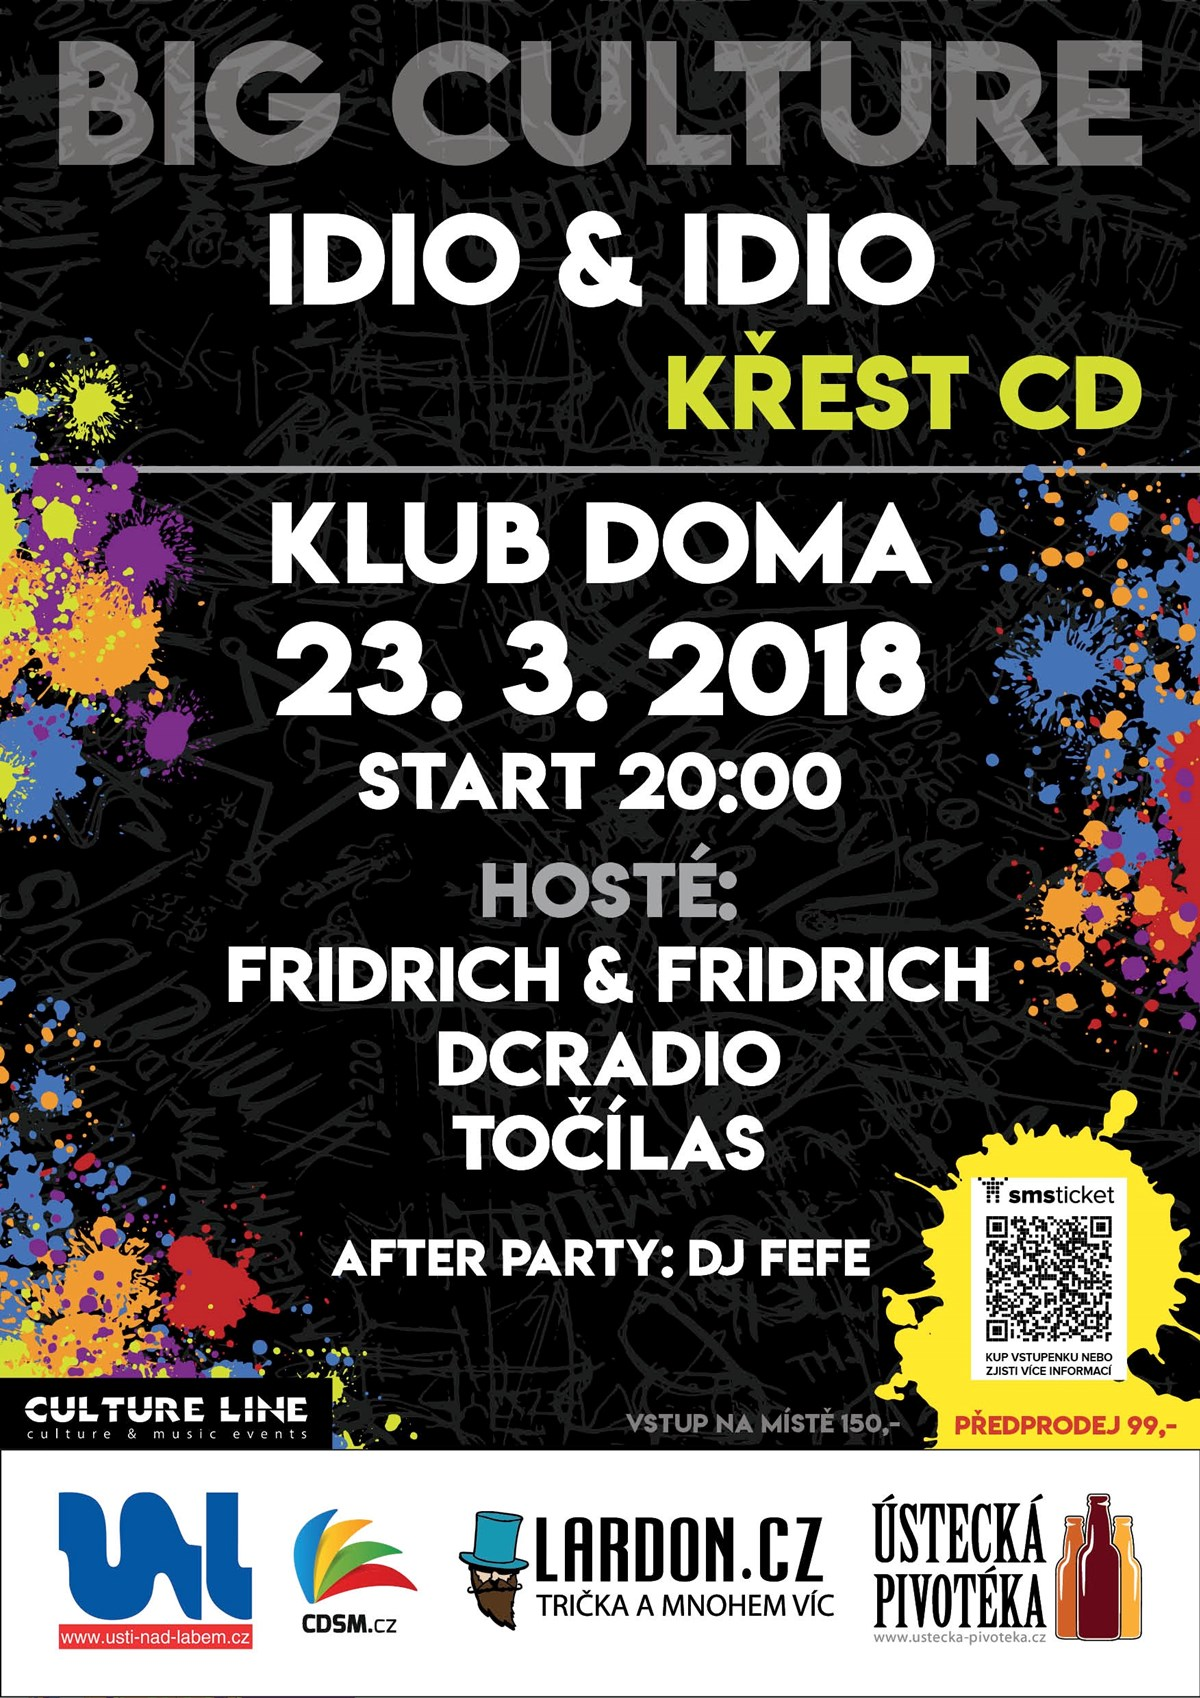 Big Culture IDIO & IDIO křest CD